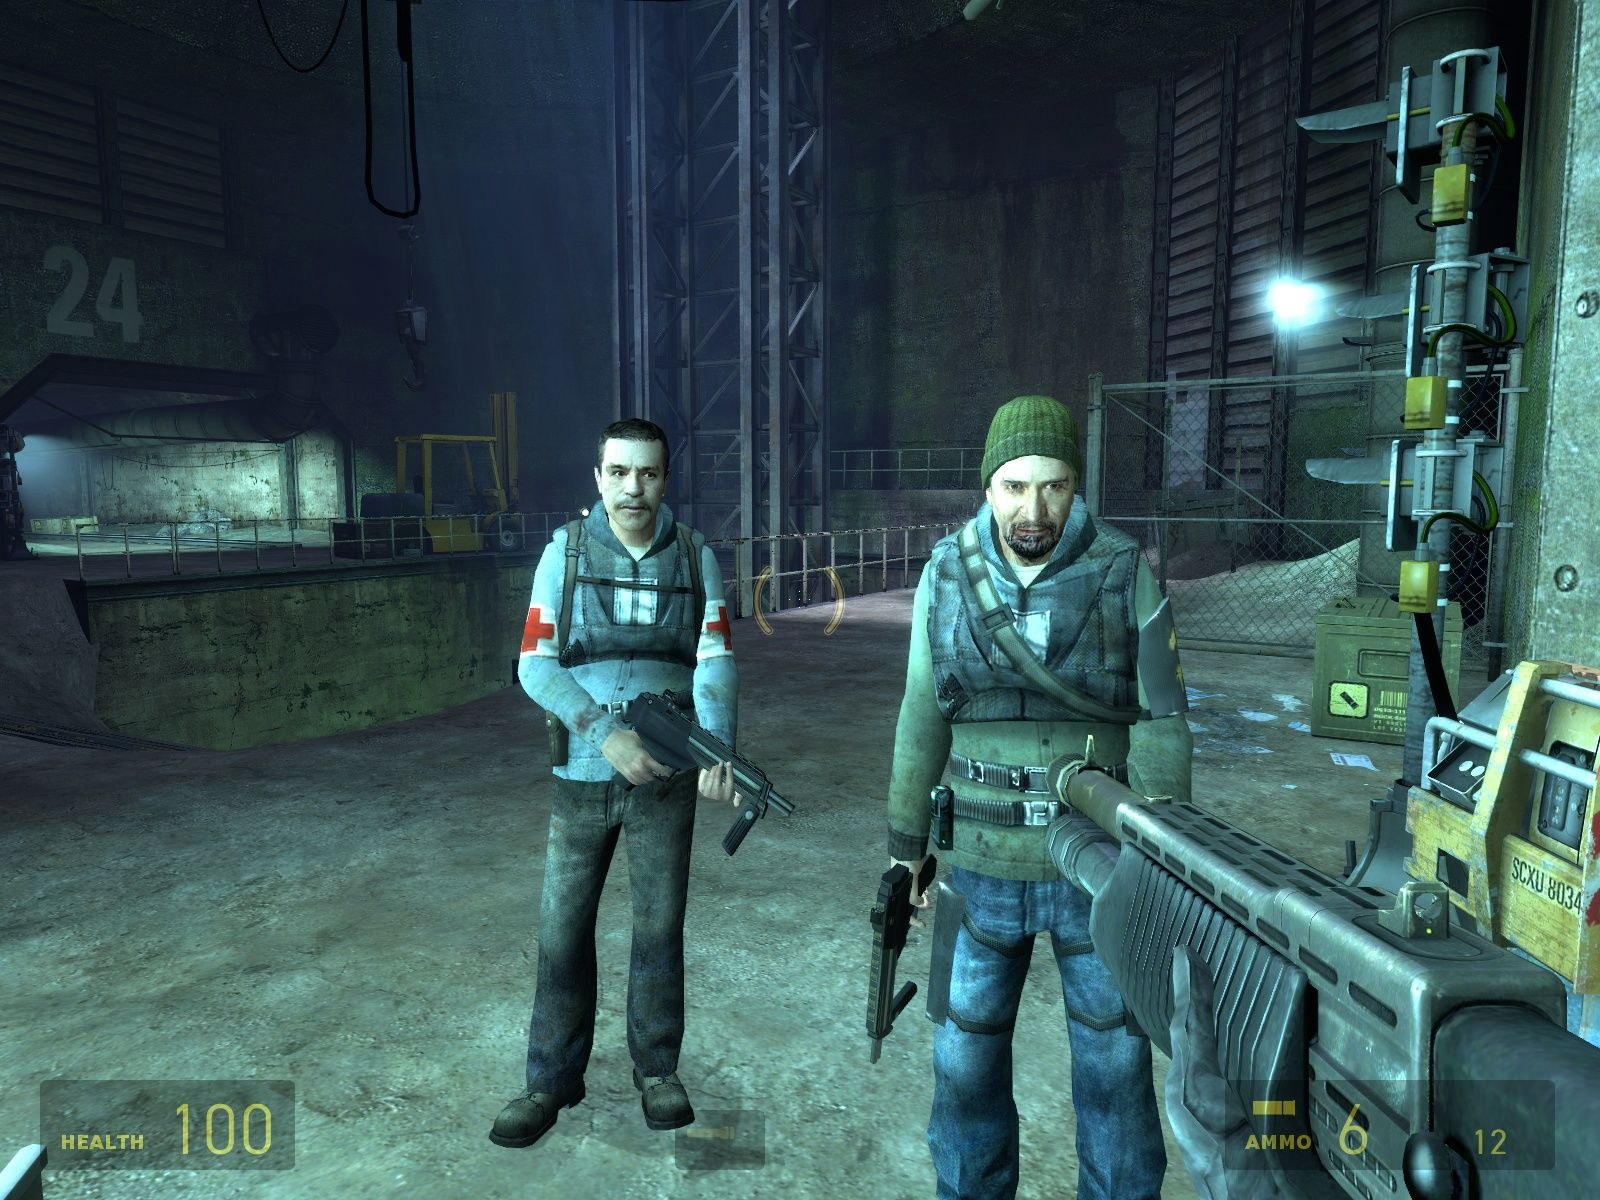 Half-Life 2: Episode Two Windows Two rather depressed friendlies.